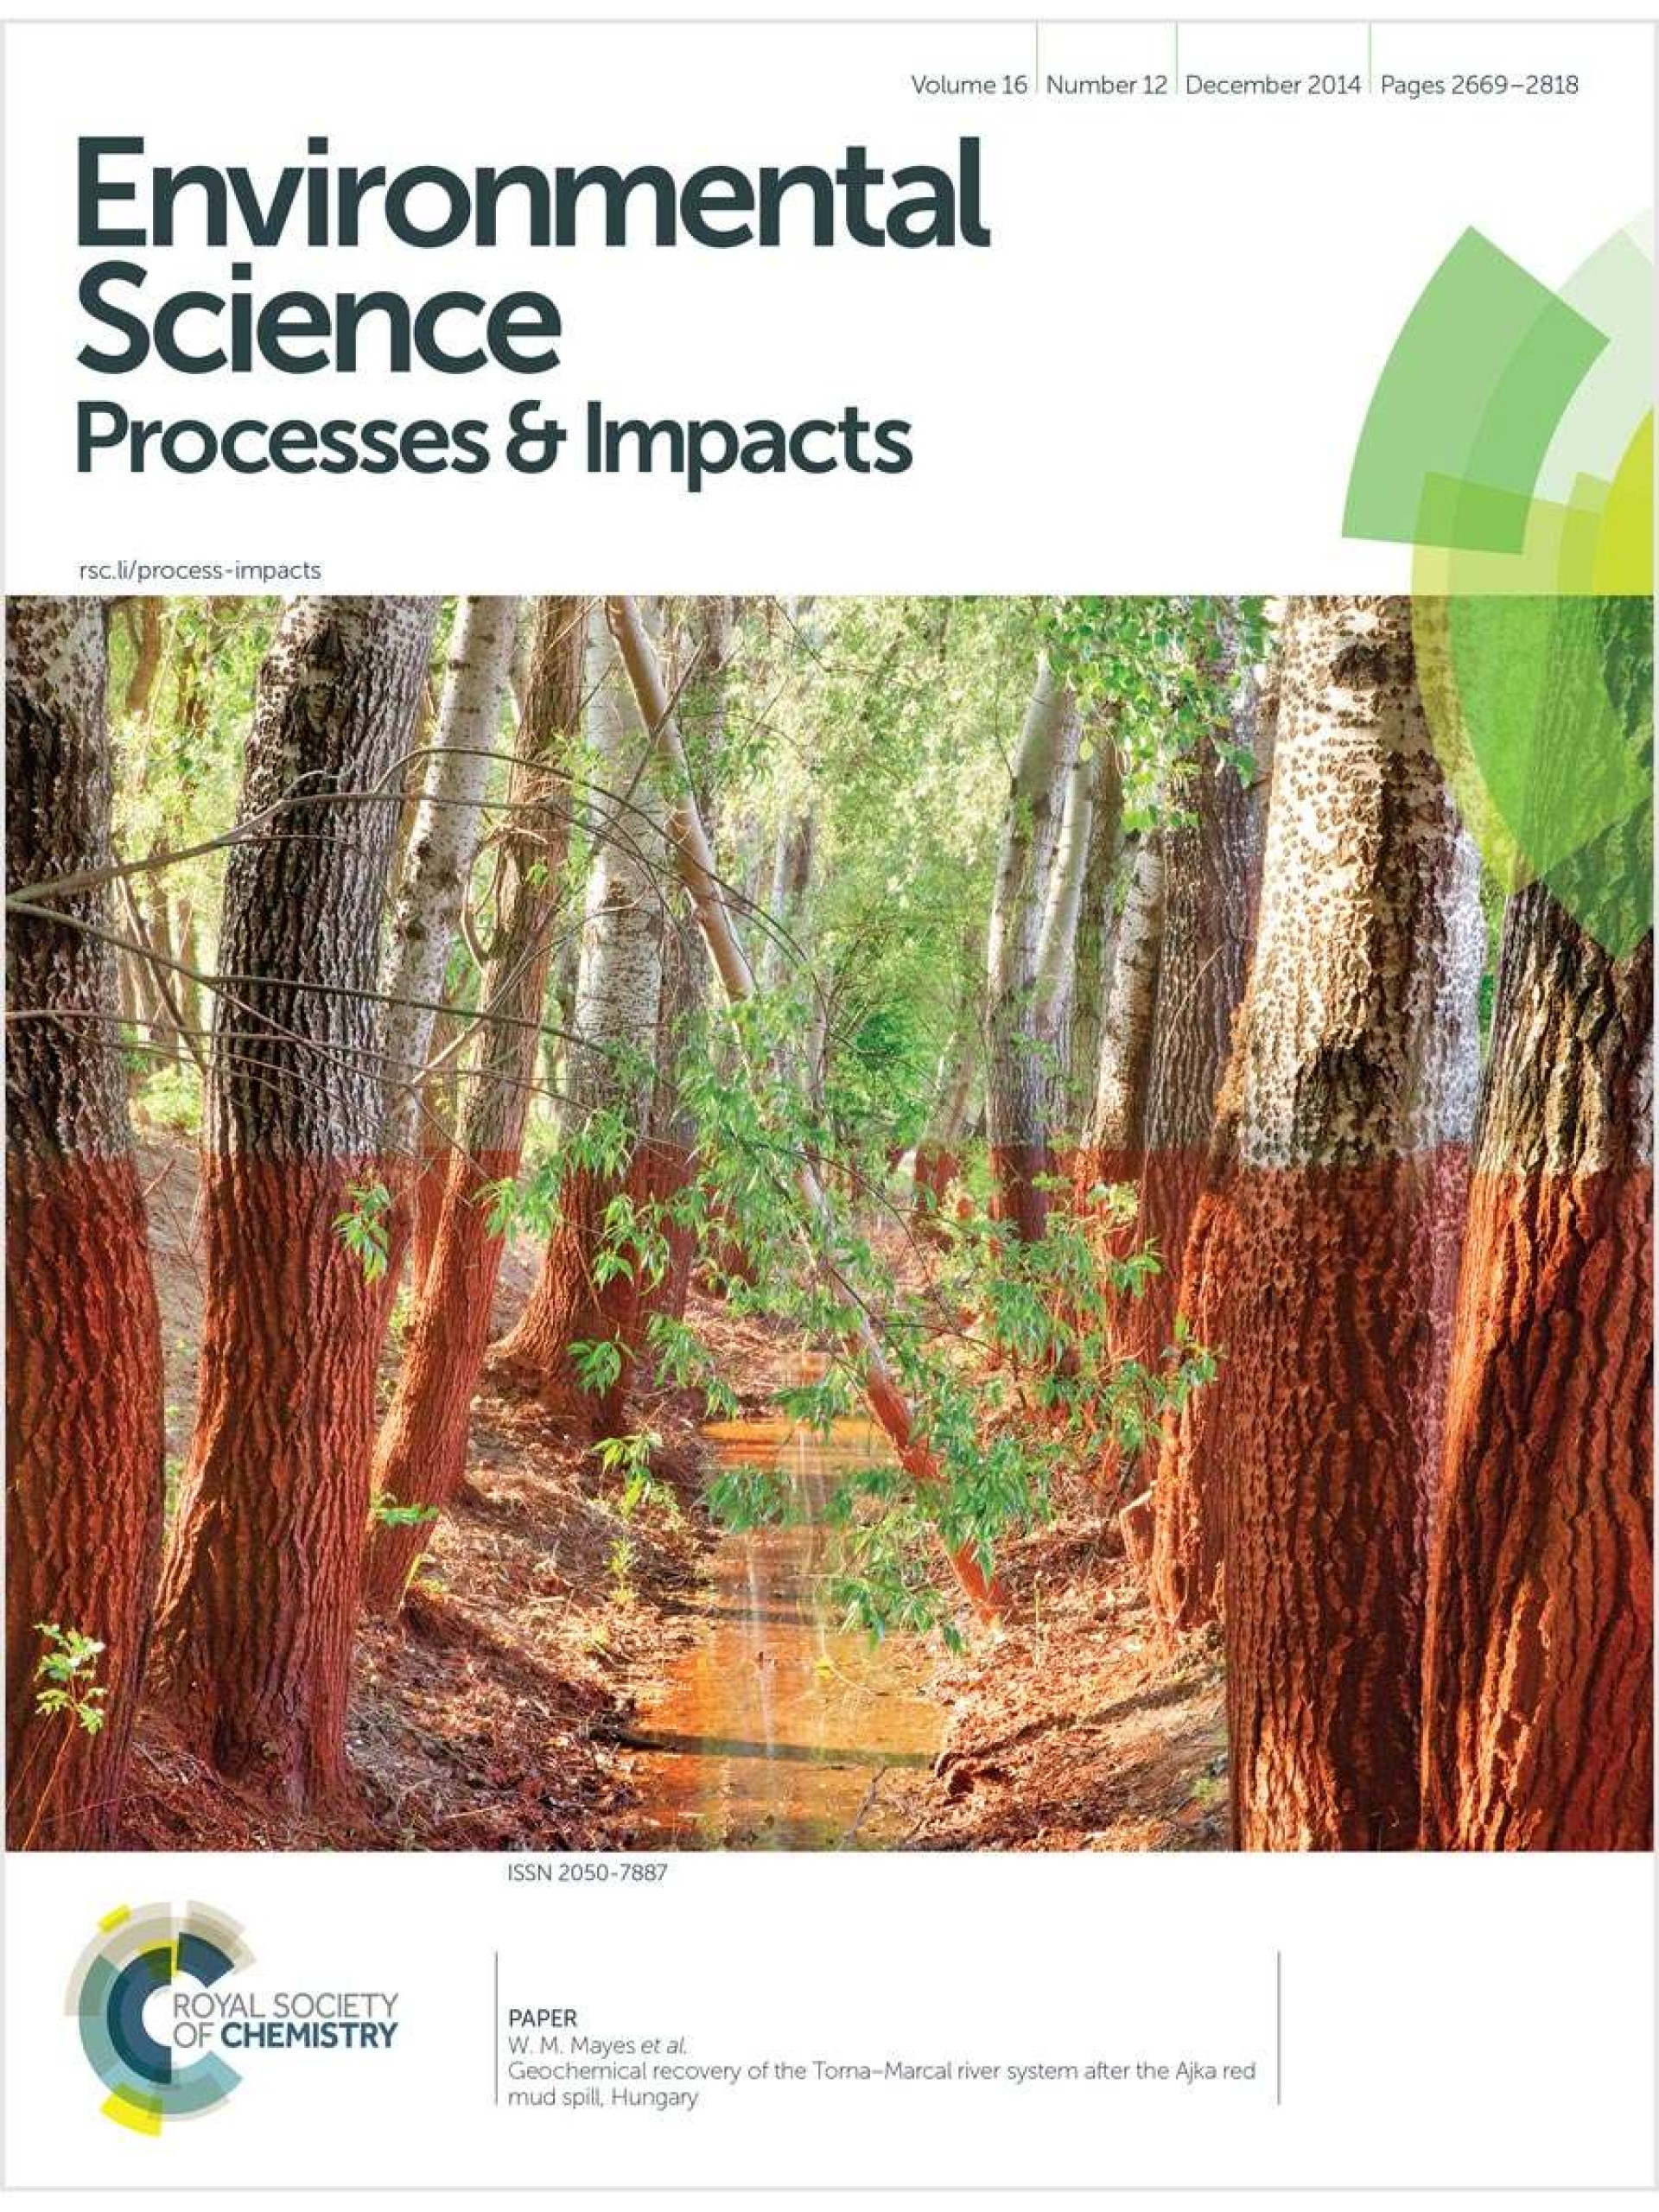 023 Research Paper Environmental Chemistry Topics 1036 Env Science Process And Impacts F2c Rare 1920